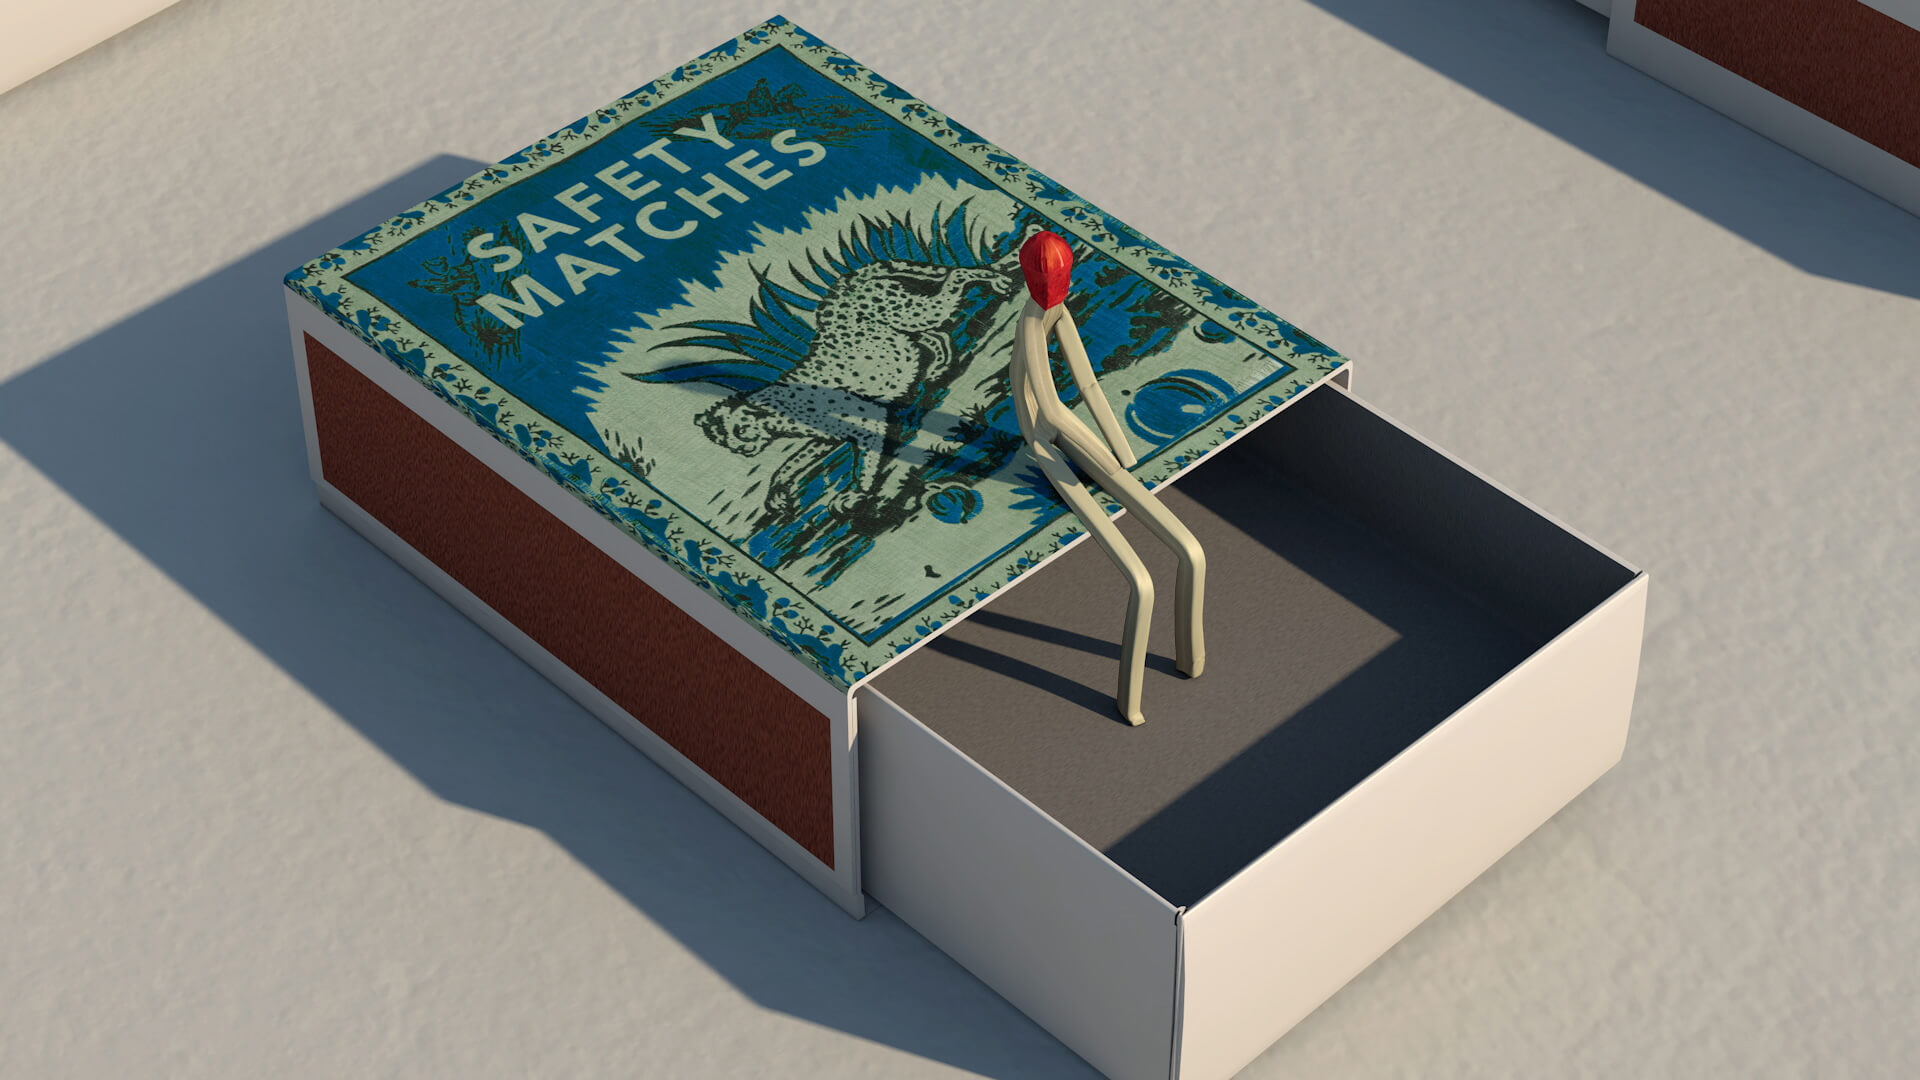 More artwork from the Match Series seen on the artist's Instagram account | Safety Match | Juan Delcan | STIRworld